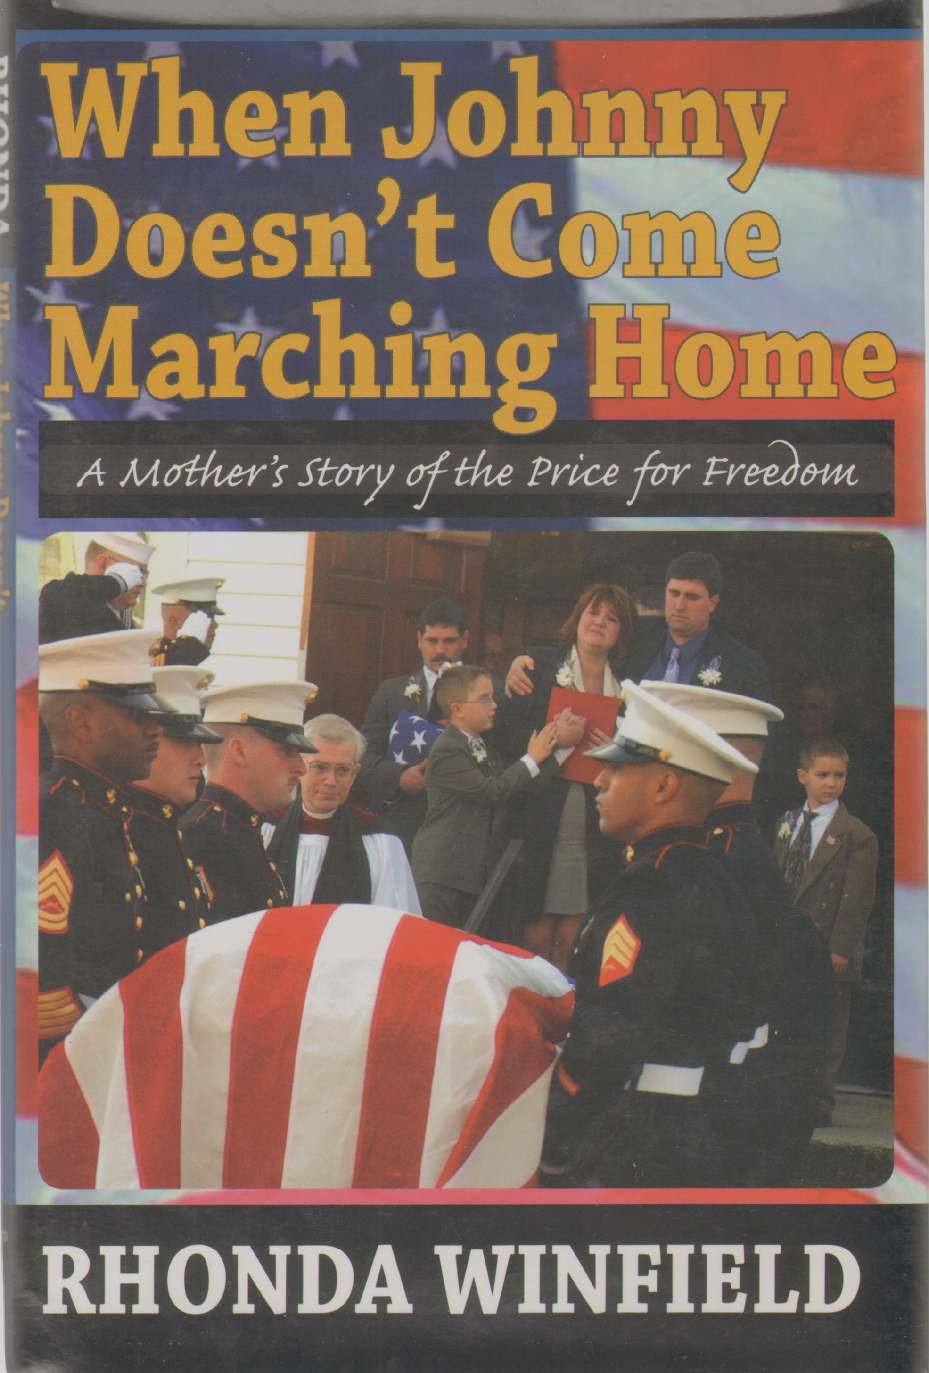 Image for WHEN JOHNNY DOESN'T COME MARCHING HOME A Mothers Story of the Price for Freedom